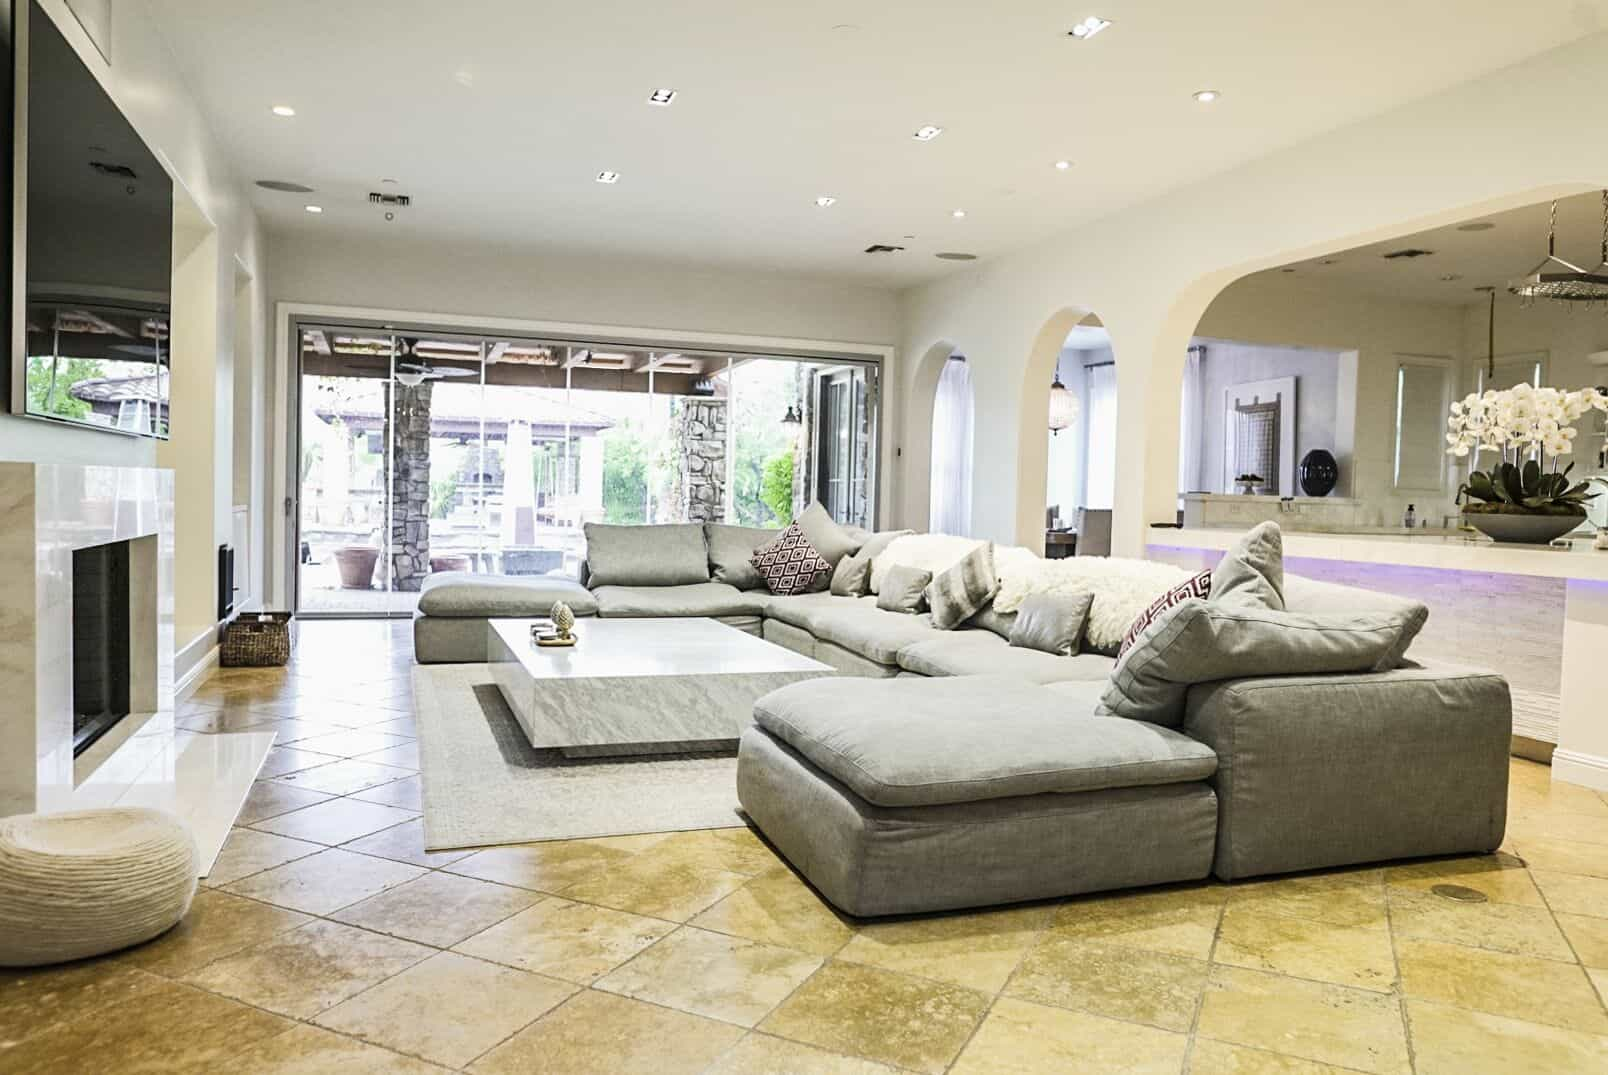 Another look at the home's family living space, focusing on the area's massive gray sofa set. Images courtesy of Toptenrealestatedeals.com.